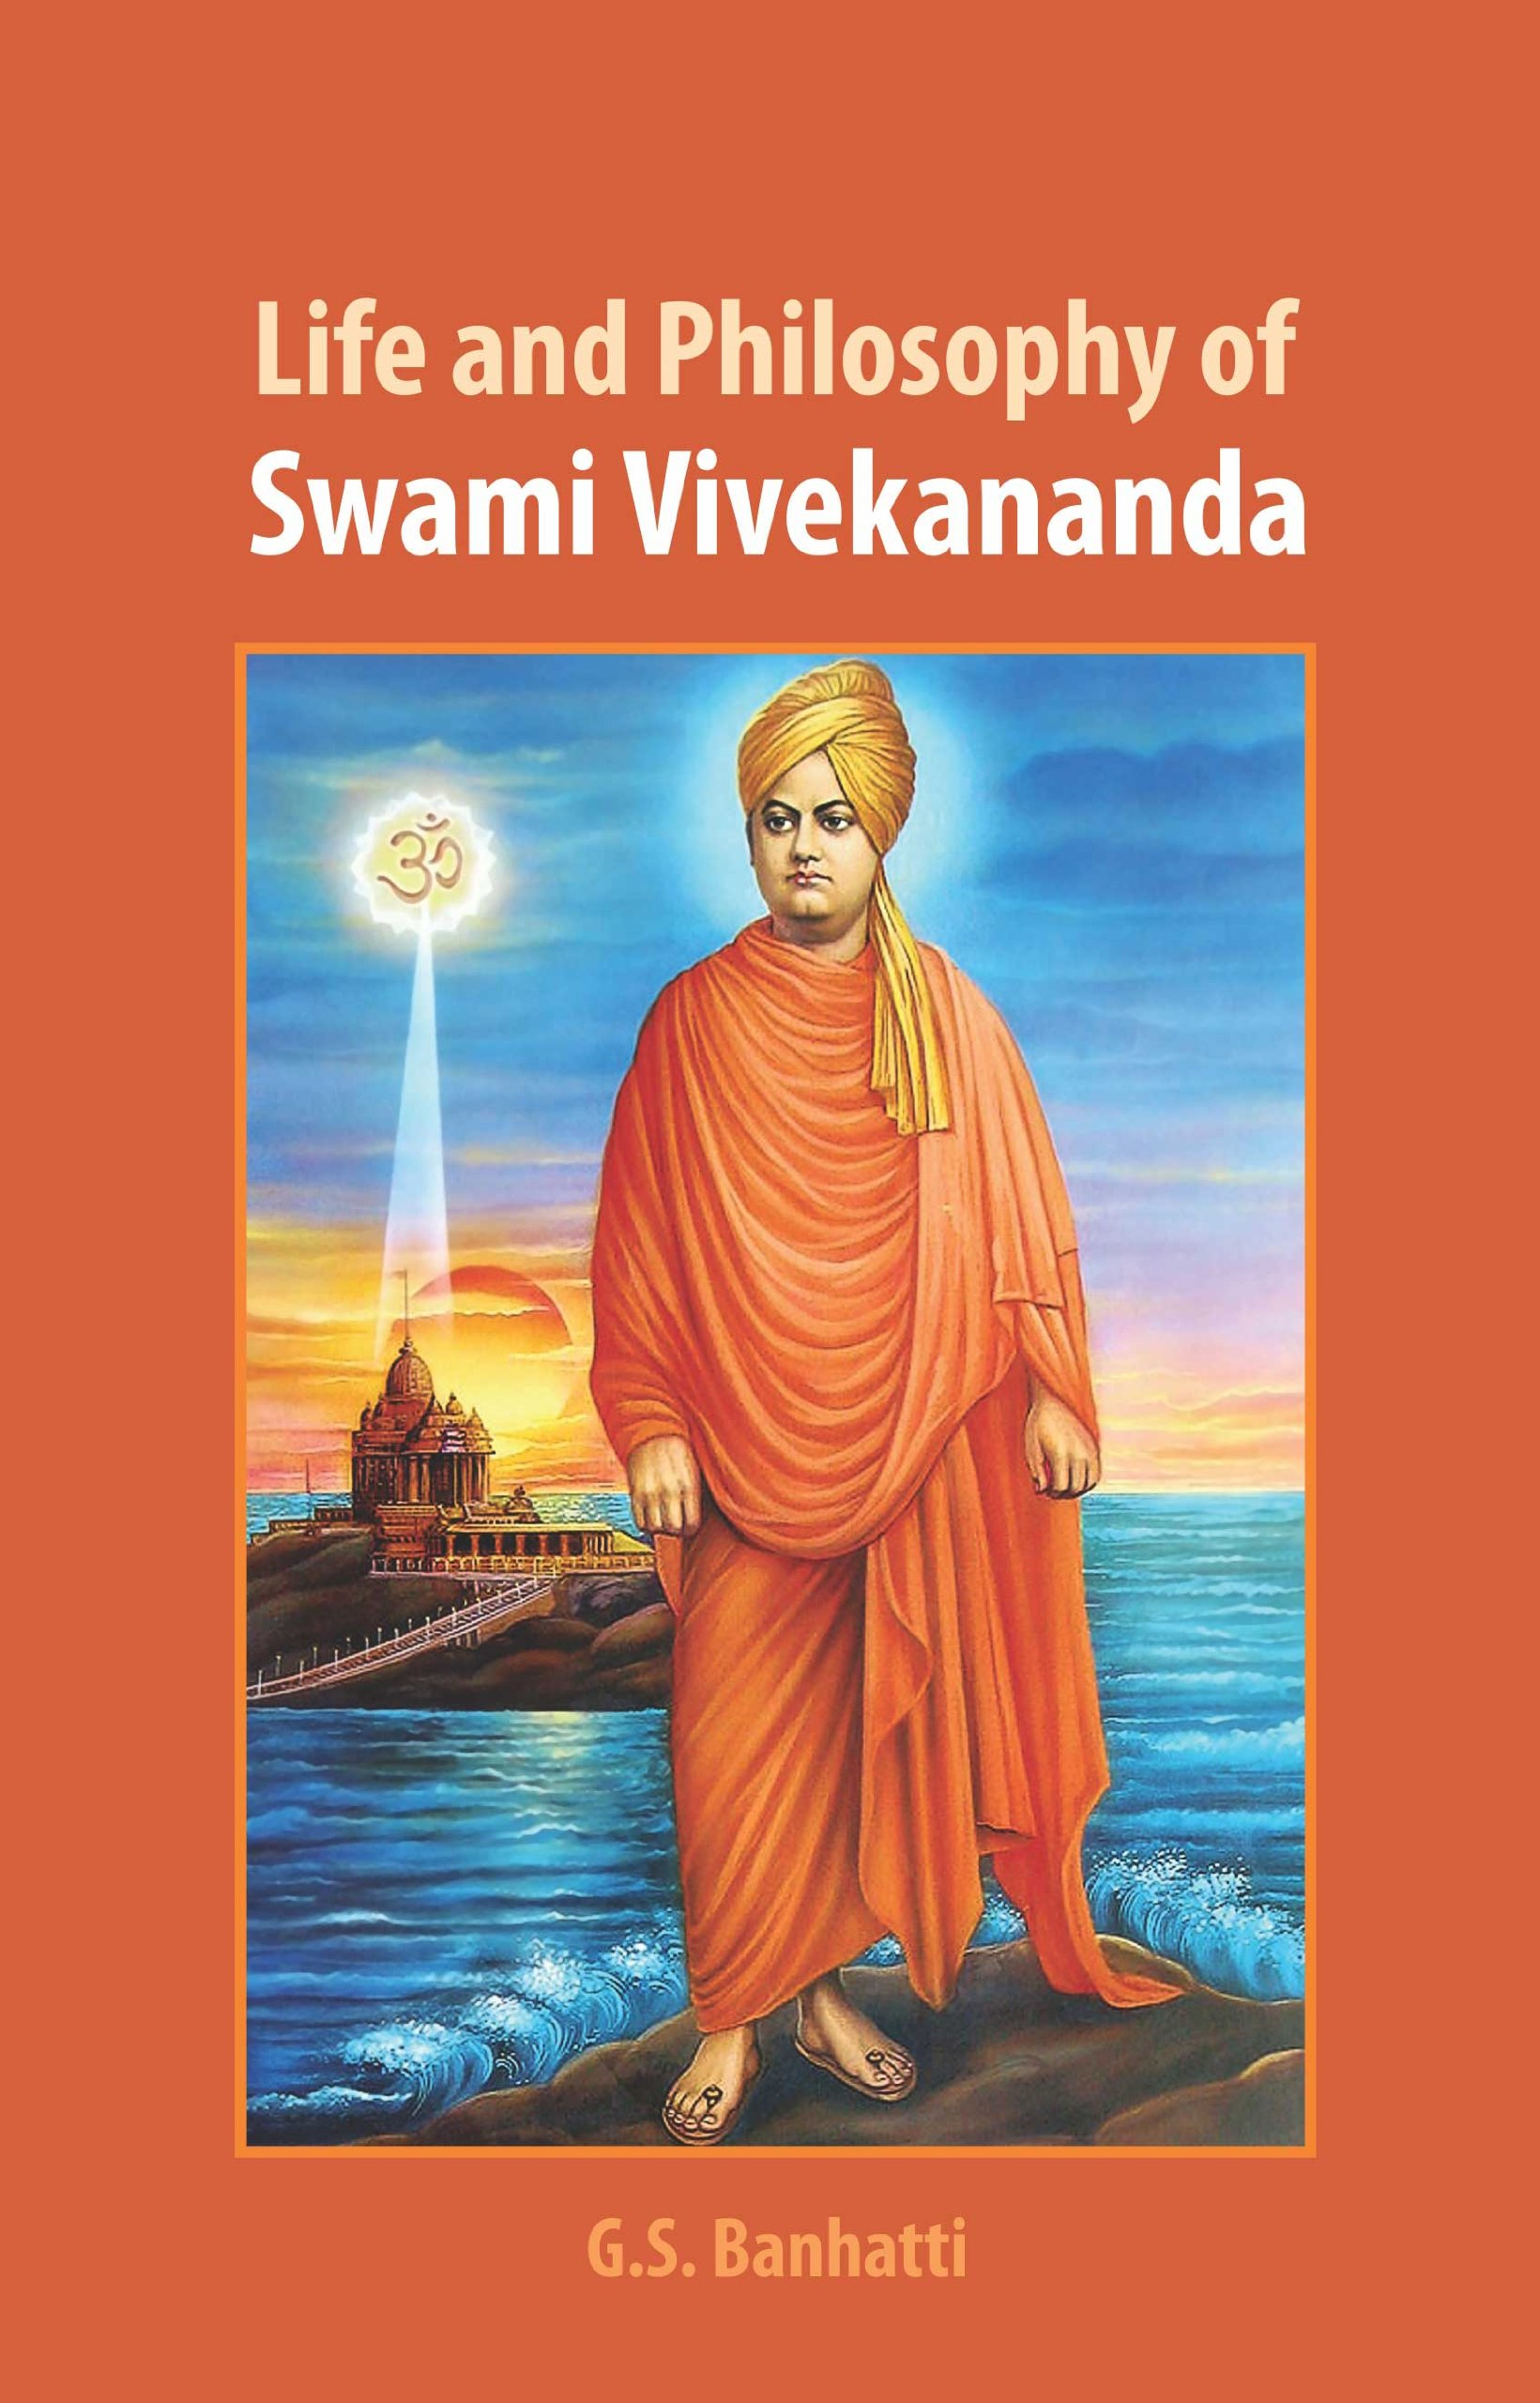 Short Essay On Swami Vivekananda